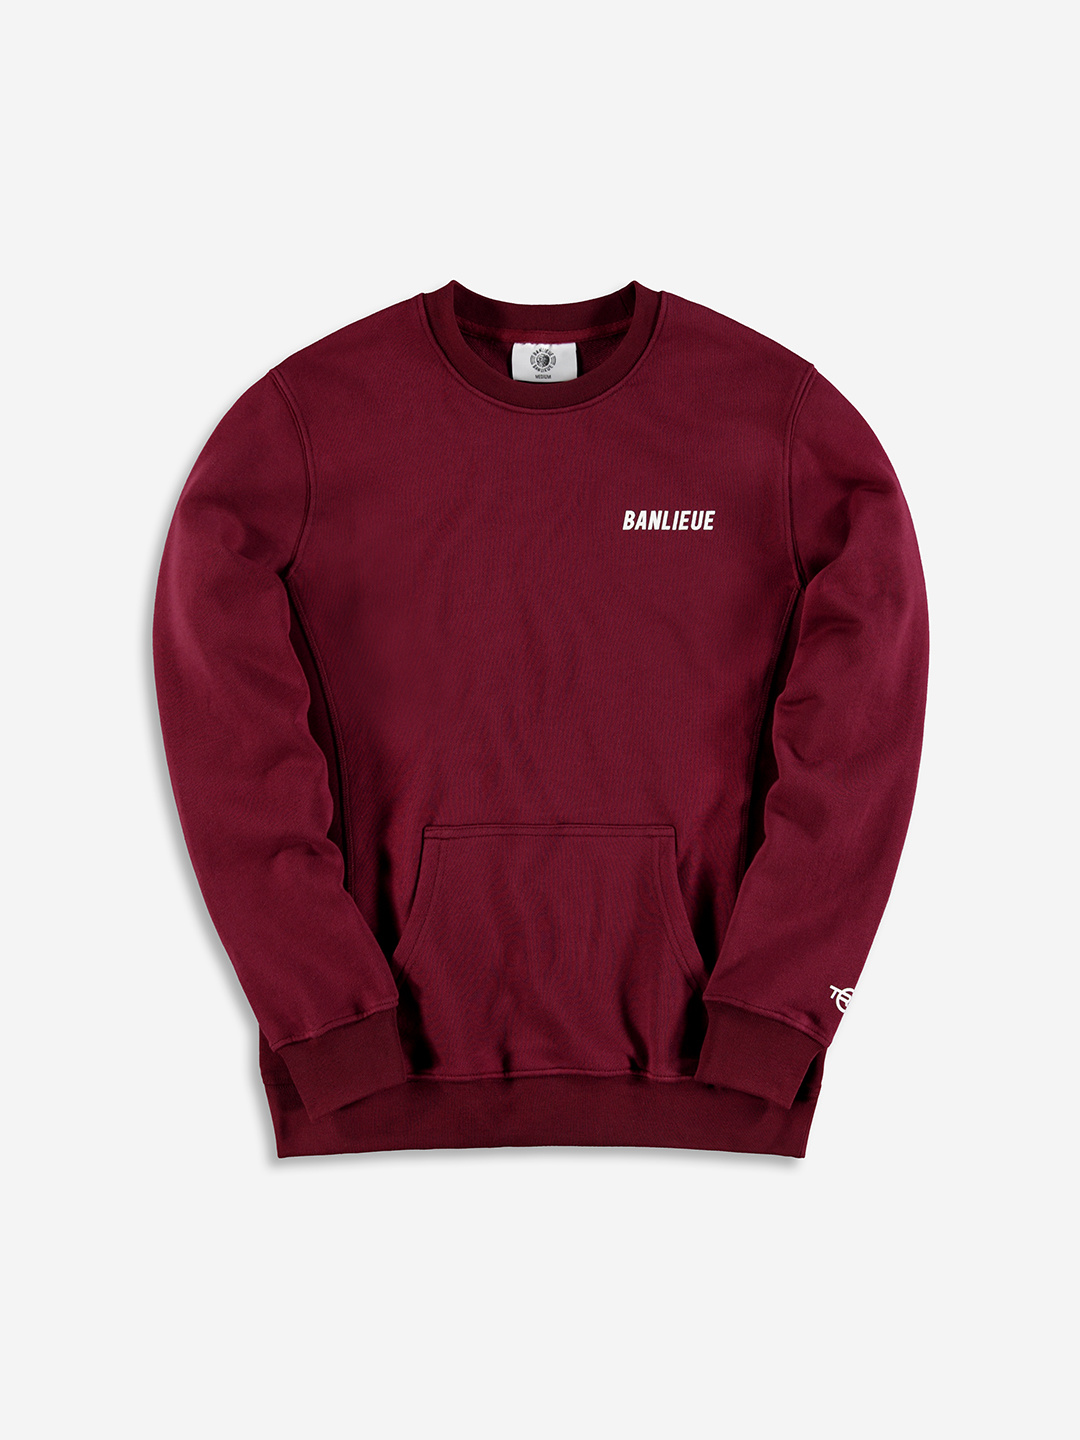 TXT SWEATER BURGUNDY